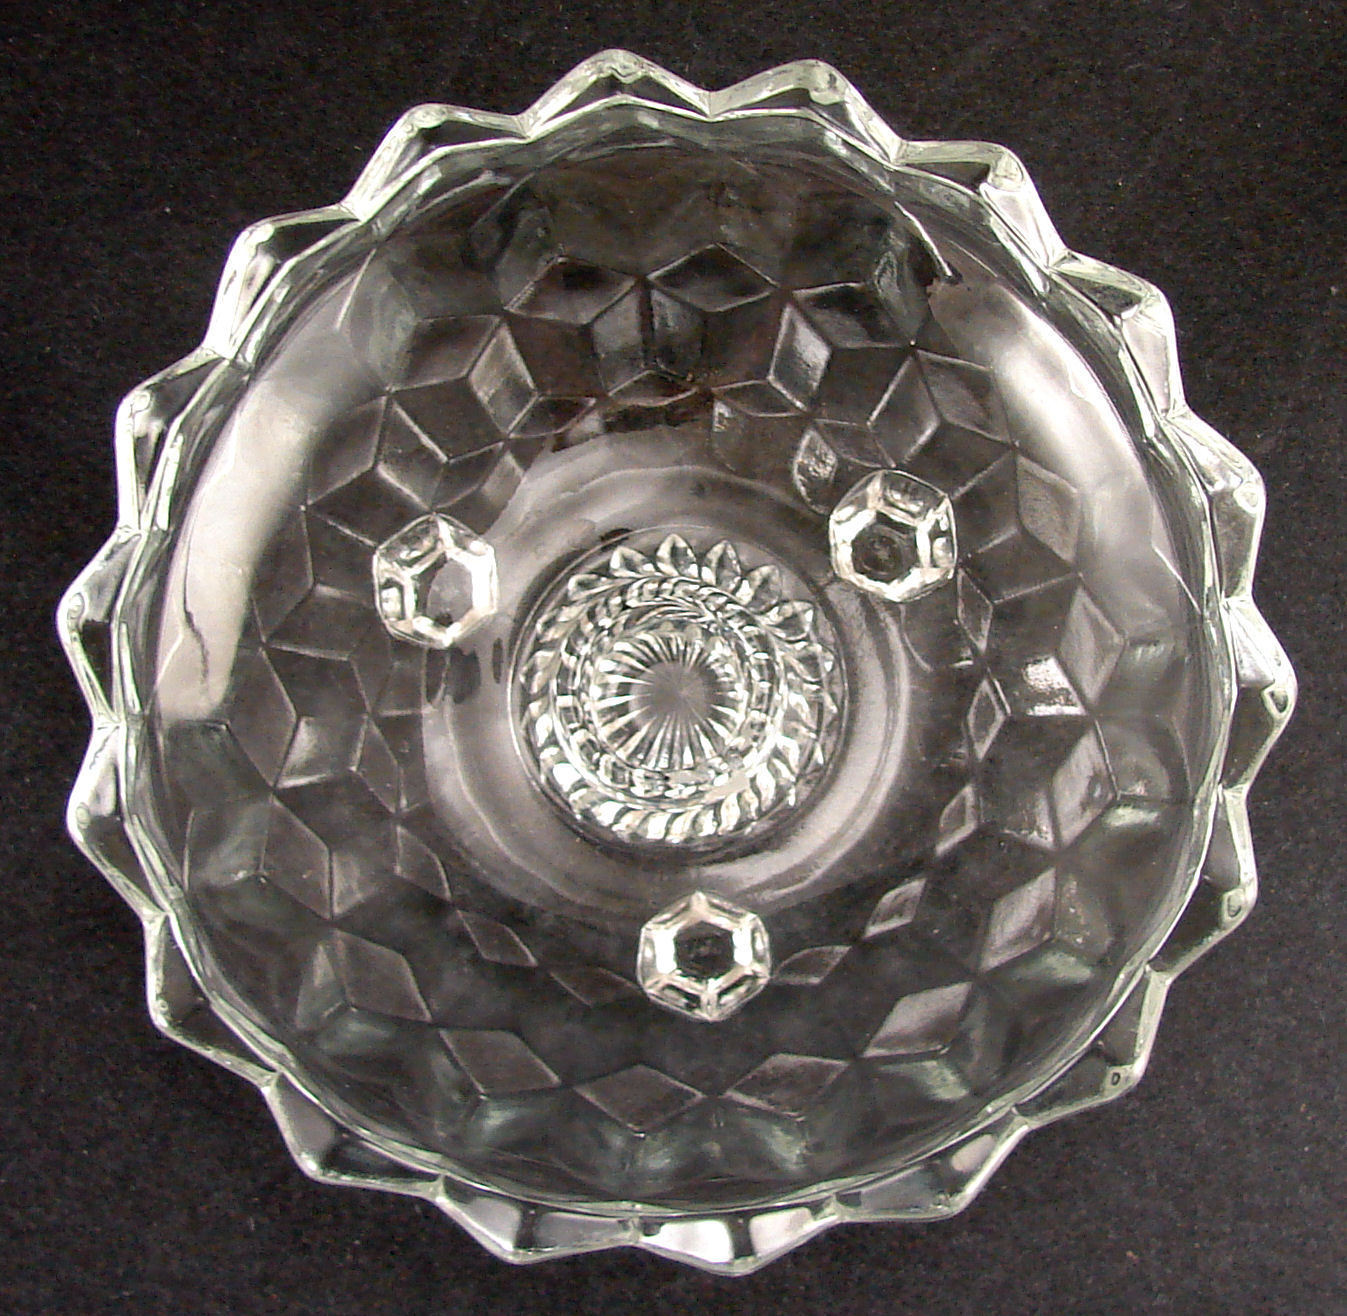 Indiana Whitehall Pattern Footed 6 1/4 Inch Candle Bowl